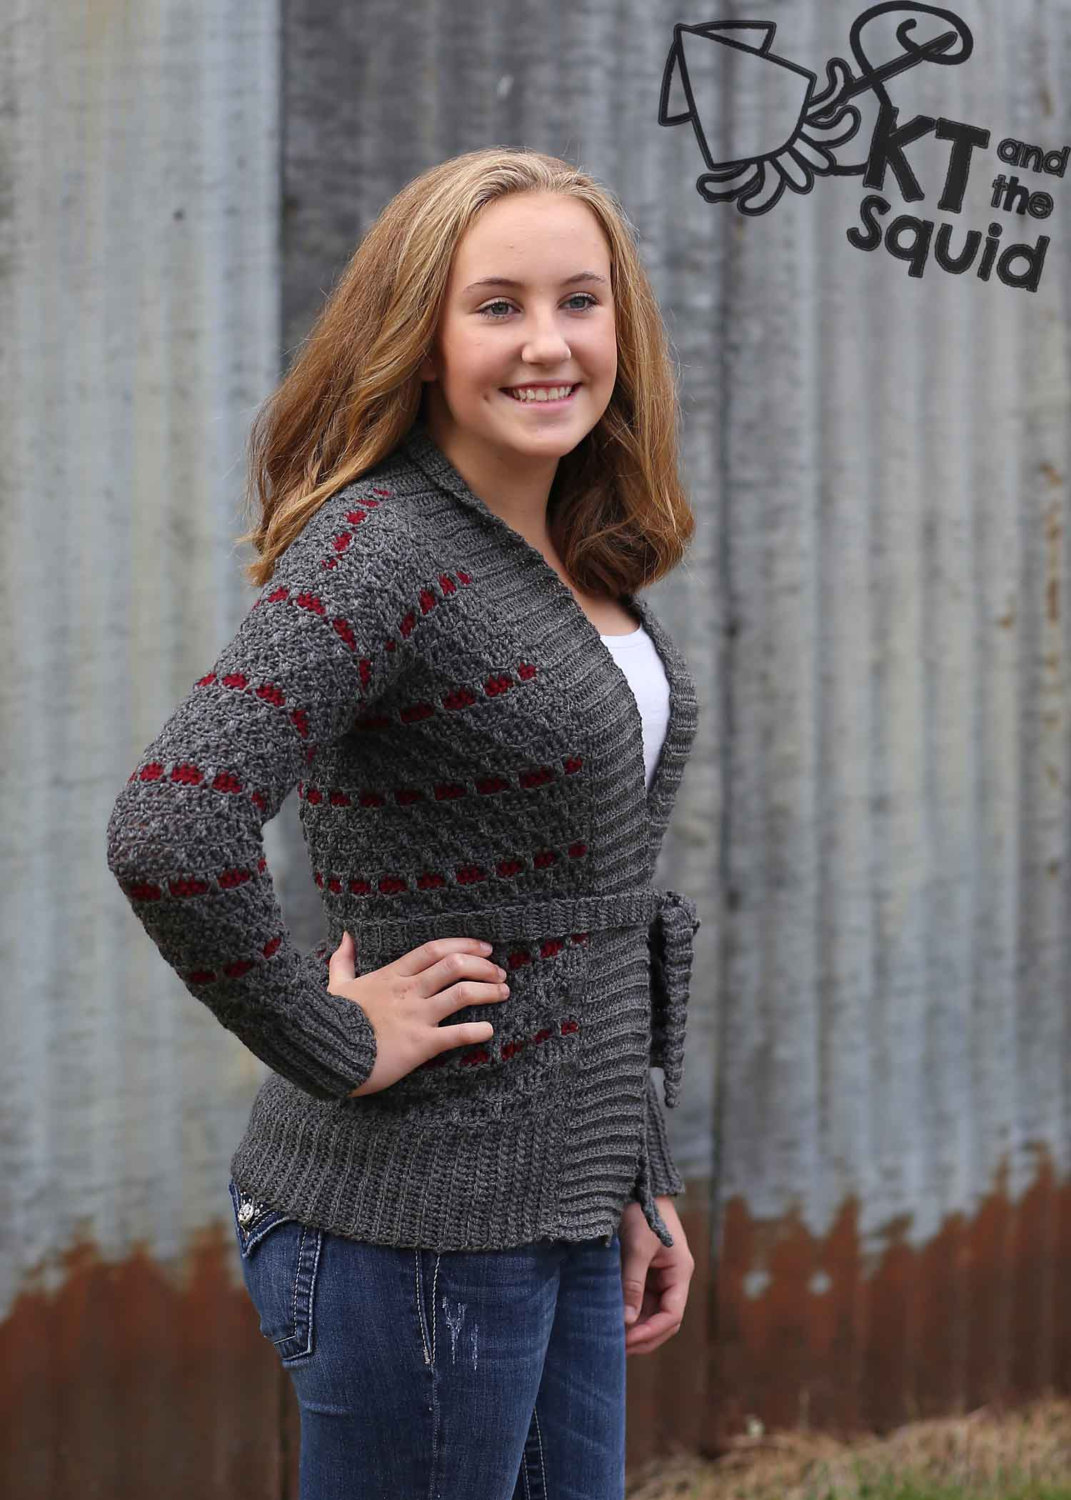 Katula Cardi Crochet Pattern Kt And The Squid